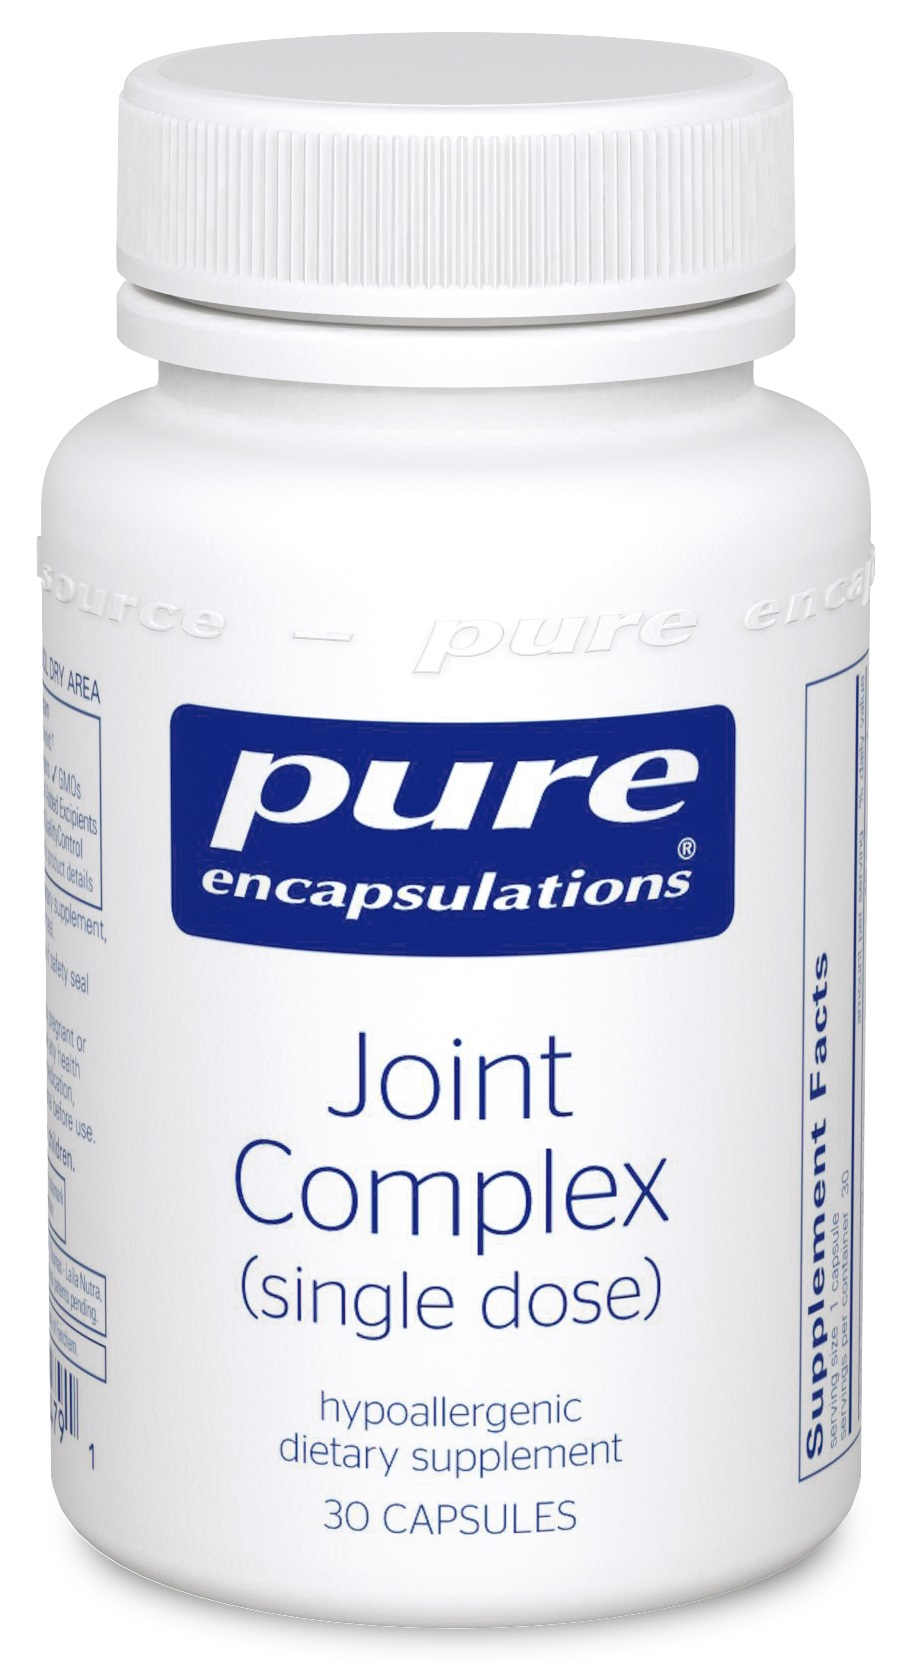 Pure Encapsulations Joint Complex (single dose)*